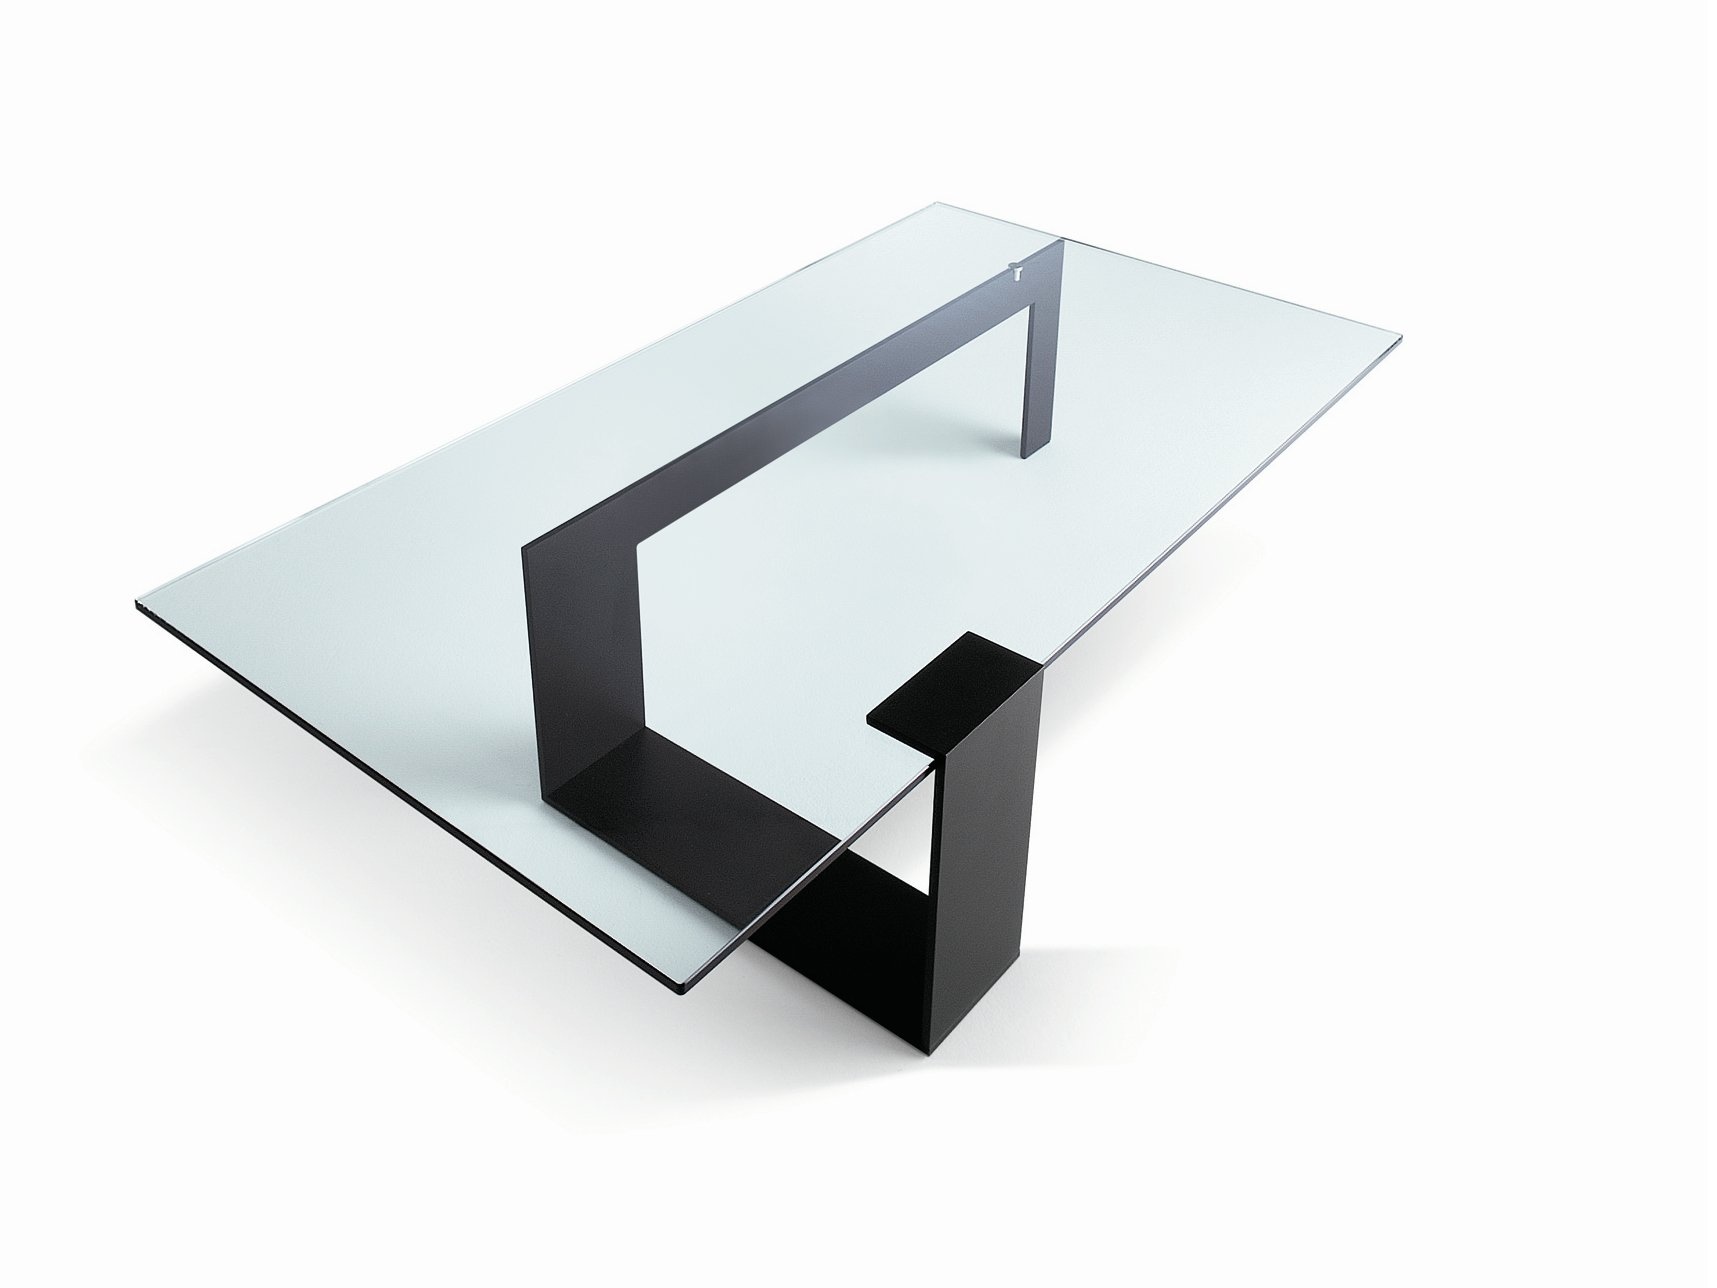 Table basse en verre plinsky by t d tonelli design design giulio mancini - Table salon verre design ...